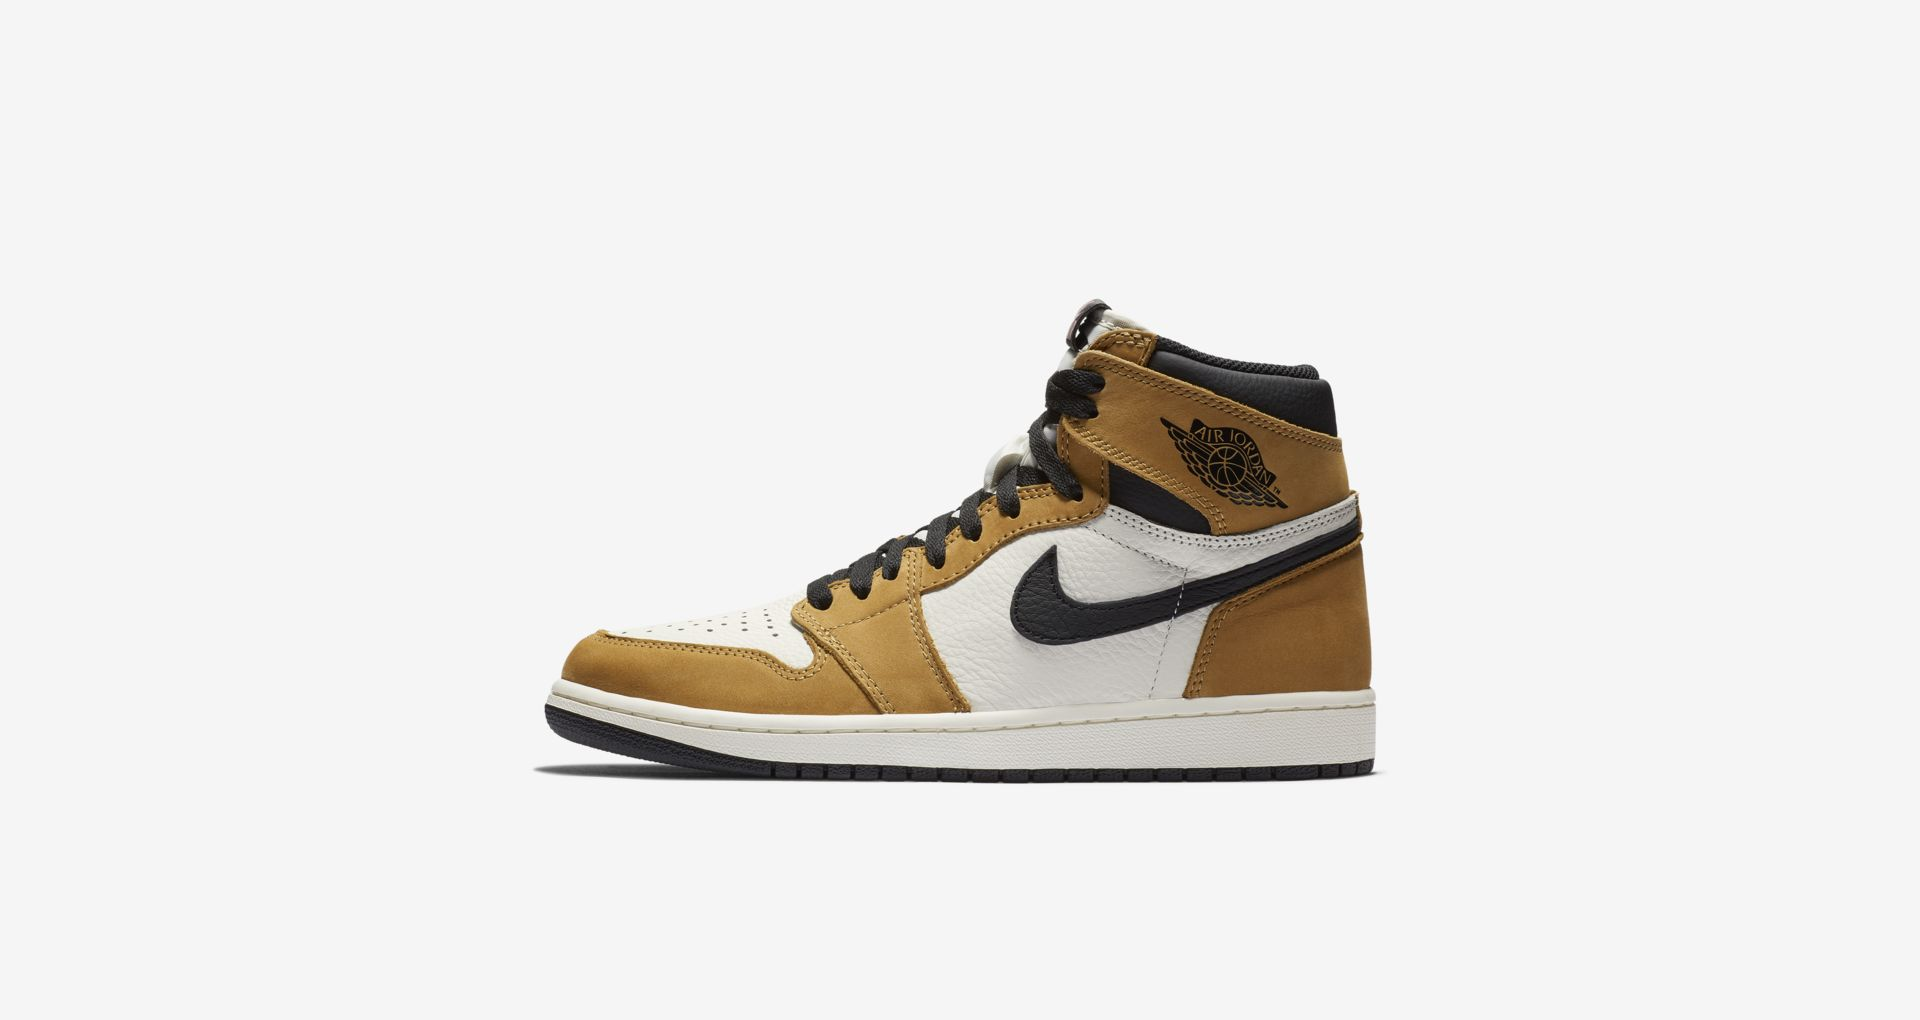 555088 700 Air Jordan 1 High OG Rookie of the Year 2